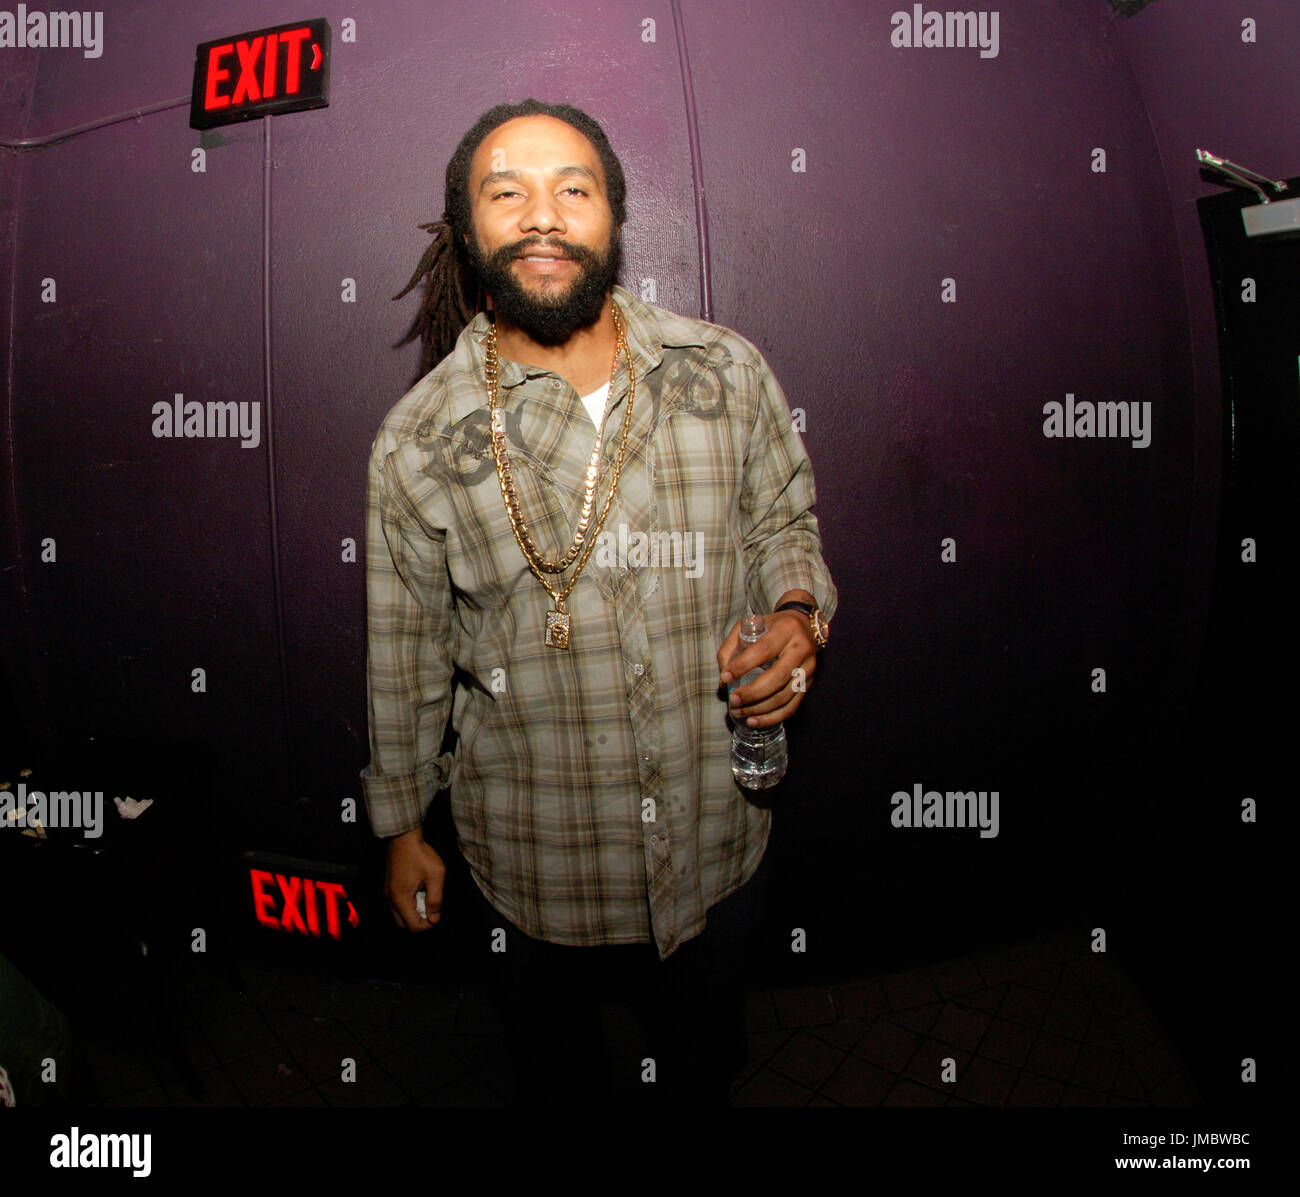 Ky Mani Marley Image Quotes: Exclusive Club Stock Photos & Exclusive Club Stock Images